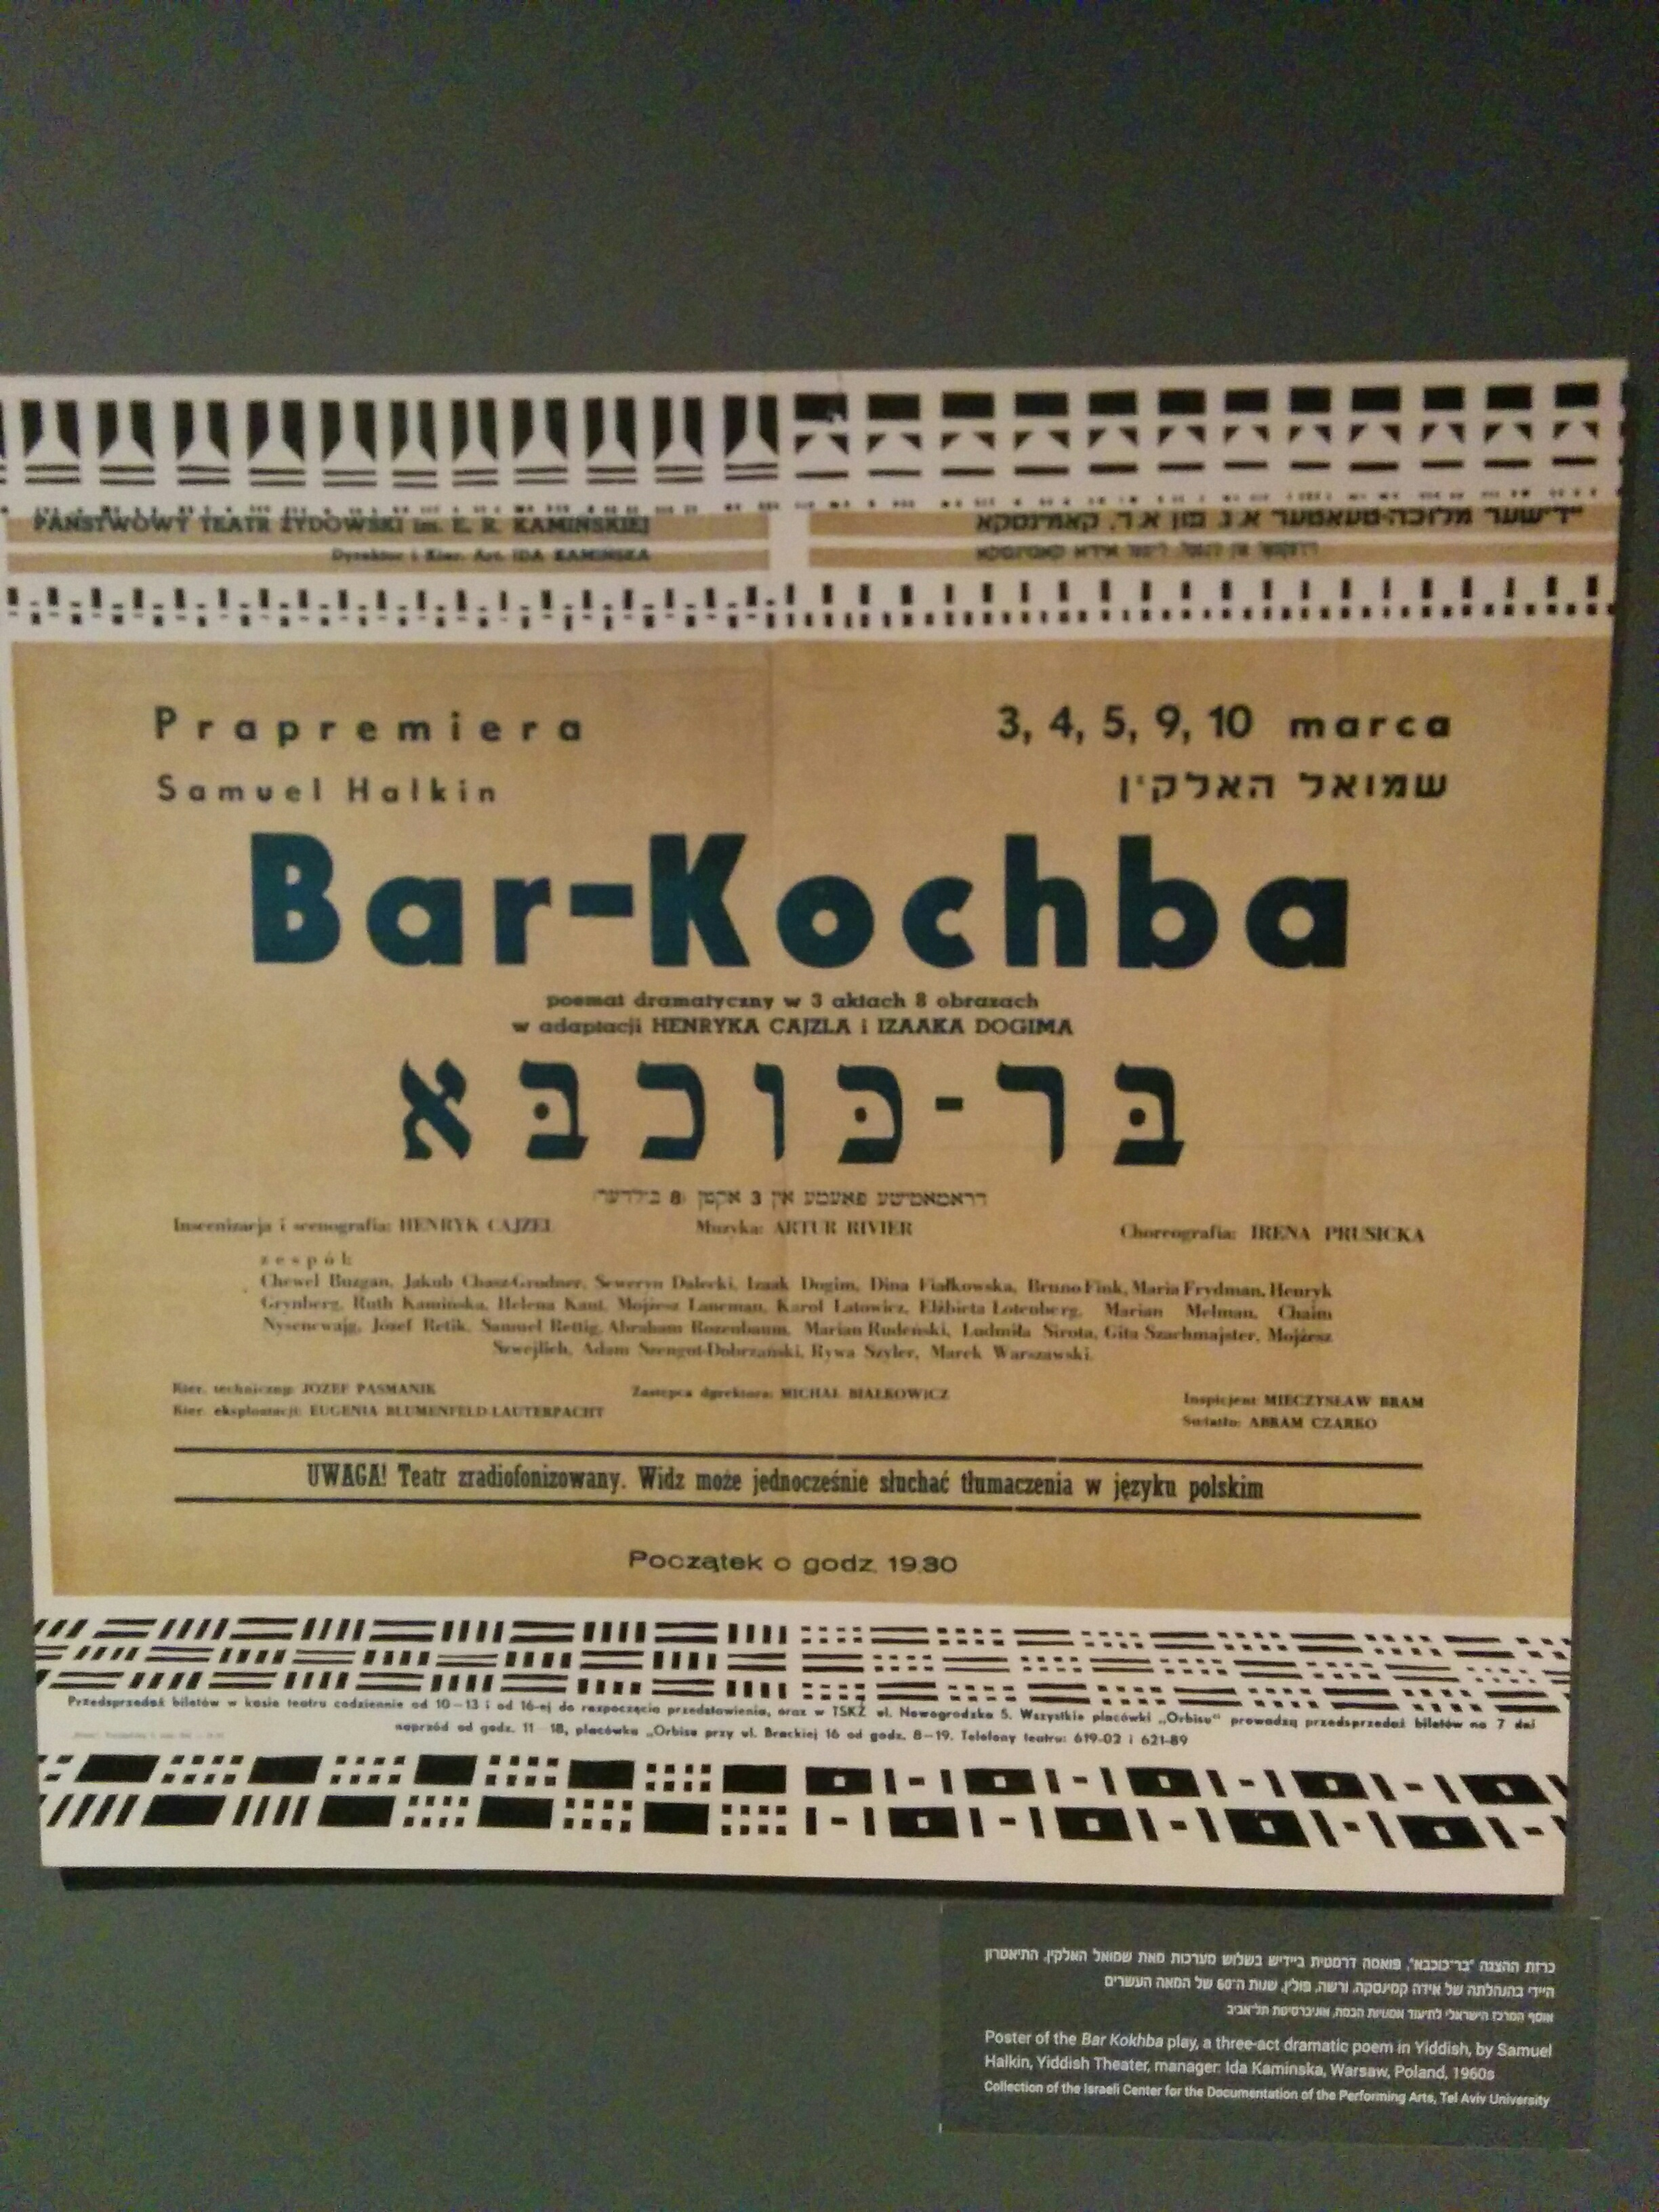 Hebrew play about Shimon Bar Kokhba - Eretz Israel Museum